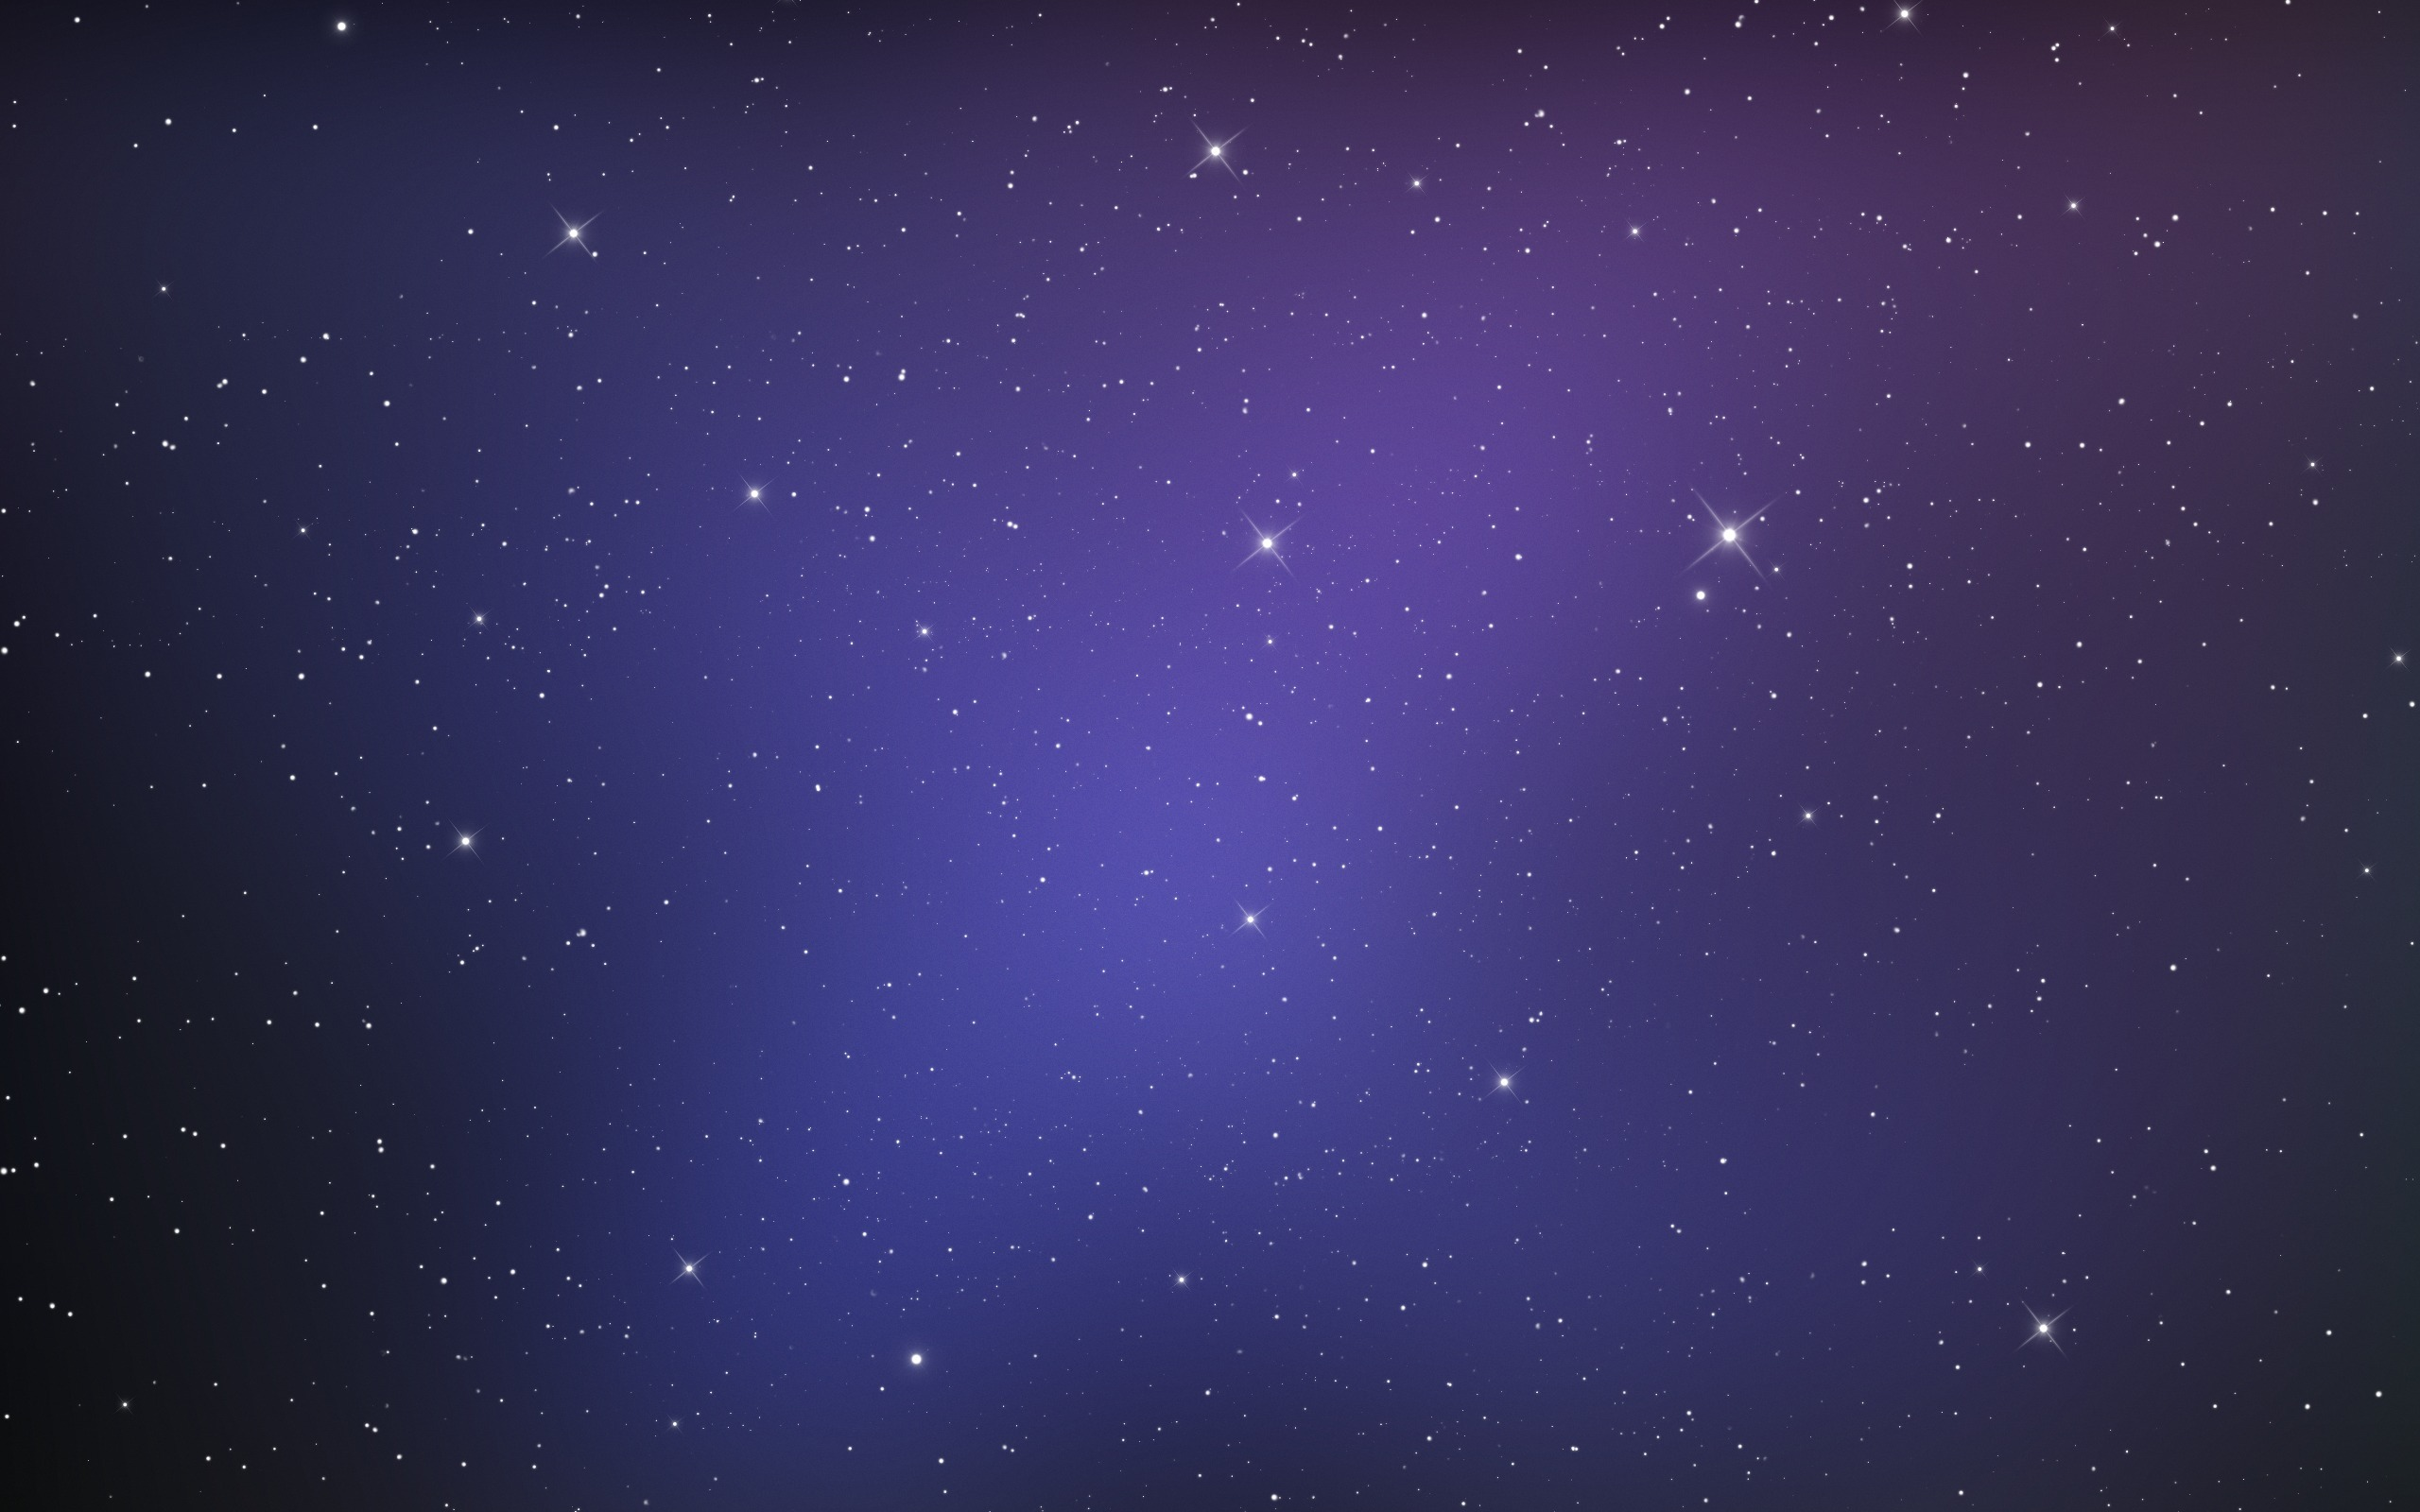 starry sky wallpaper night